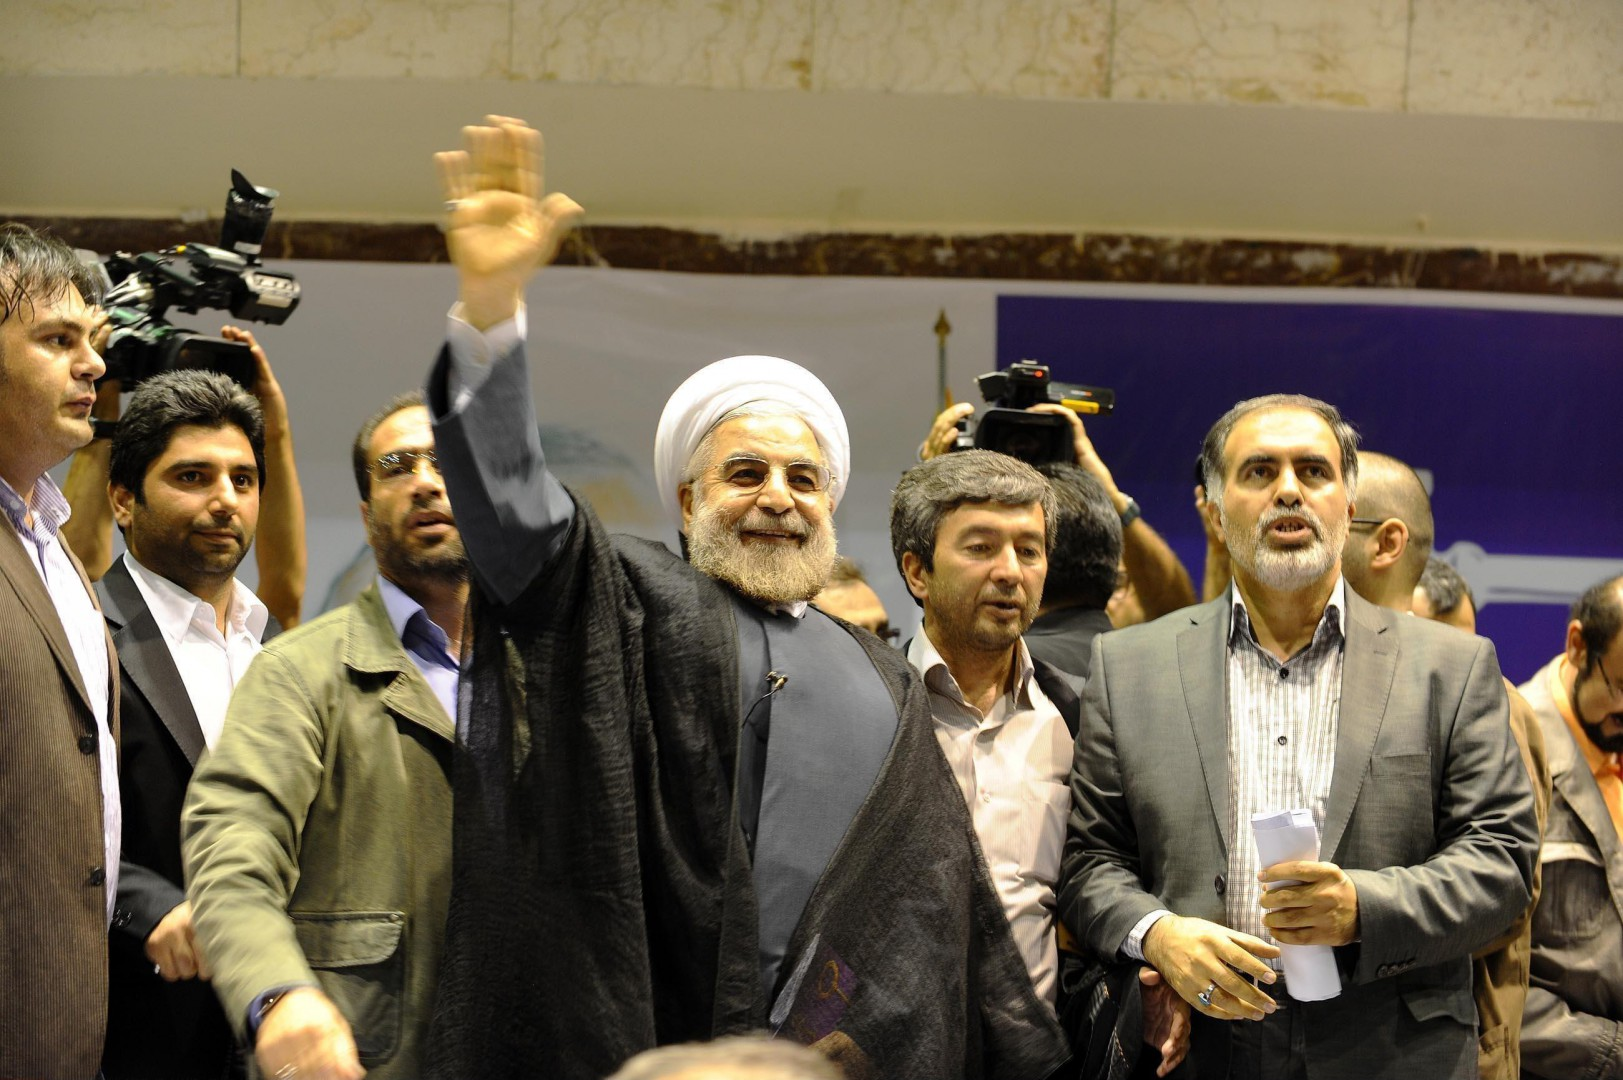 DR HASSAN ROHANI (BORN 12 NOVEMBER 1948) WITH HIS SUPPORTER'S. ON 7 MAY 2013, IRANIAN POLITICIAN AND MUJTAHID HASSAN ROUHANI REGISTERED FOR THE UPCOMING PRESIDENTIAL CAMPAIGN THAT WILL BE HELD ON 14 JUNE 2013. HE SAID THAT HE WILL PREPARE A -CIVIL RIGHTS CHARTER-, RESTORE THE ECONOMY AND IMPROVE ROCKY RELATIONS WITH THE WEST IF HE IS ELECTED. TEHRAN, IRAN -12/06/2013./FARNOOD_F1100.029 %_ 00659469  _%